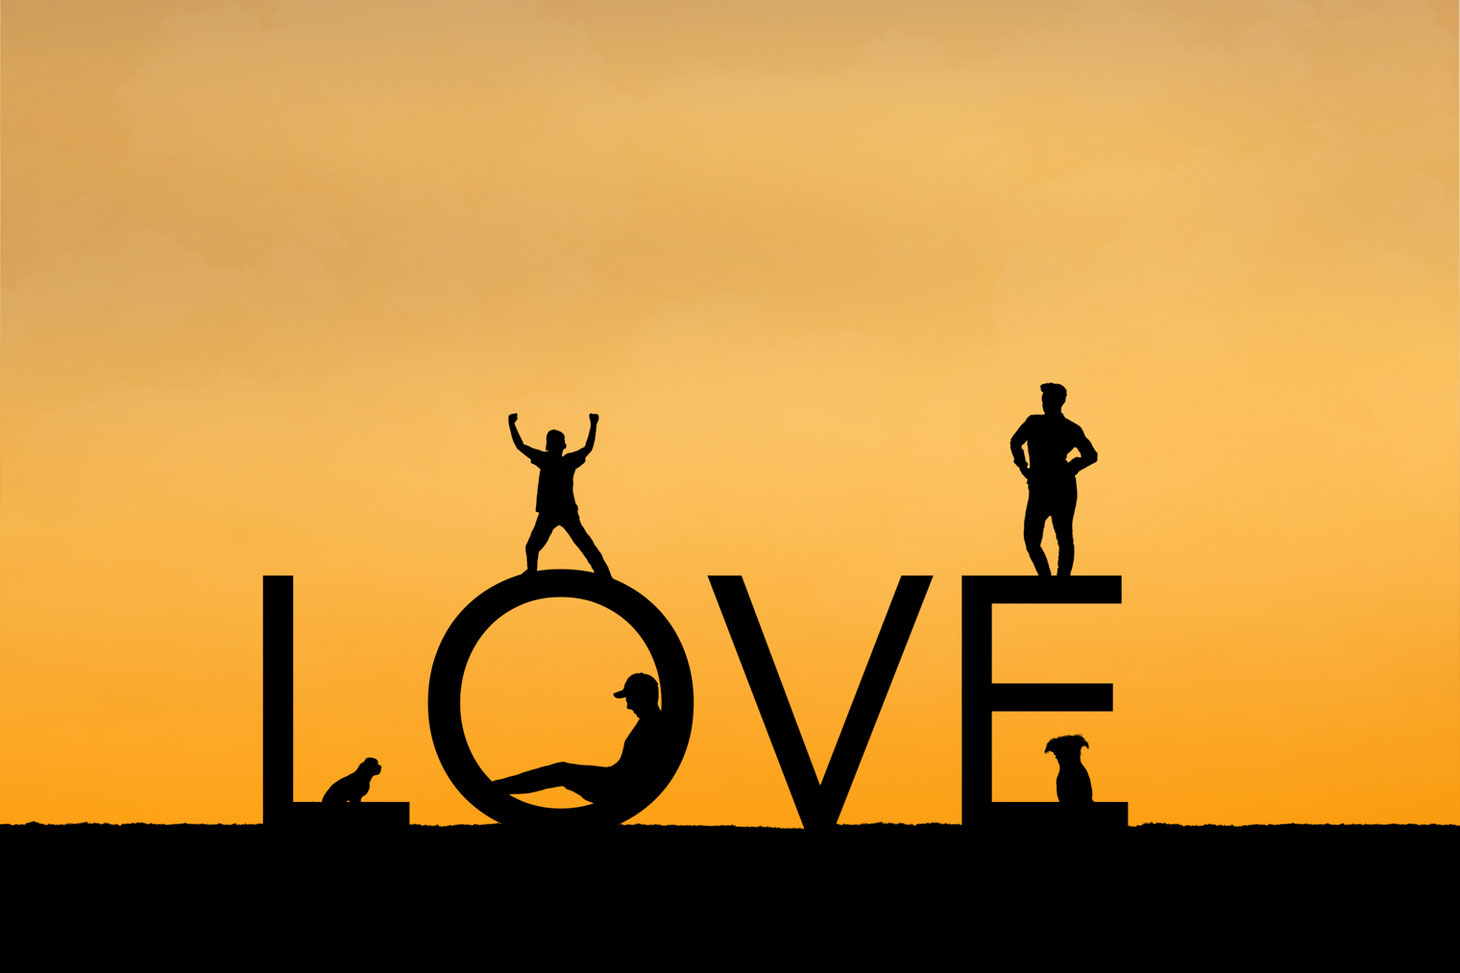 Silhouettes of 2 parents, one child, and 2 dogs on the letters LOVE. Sky is orange.